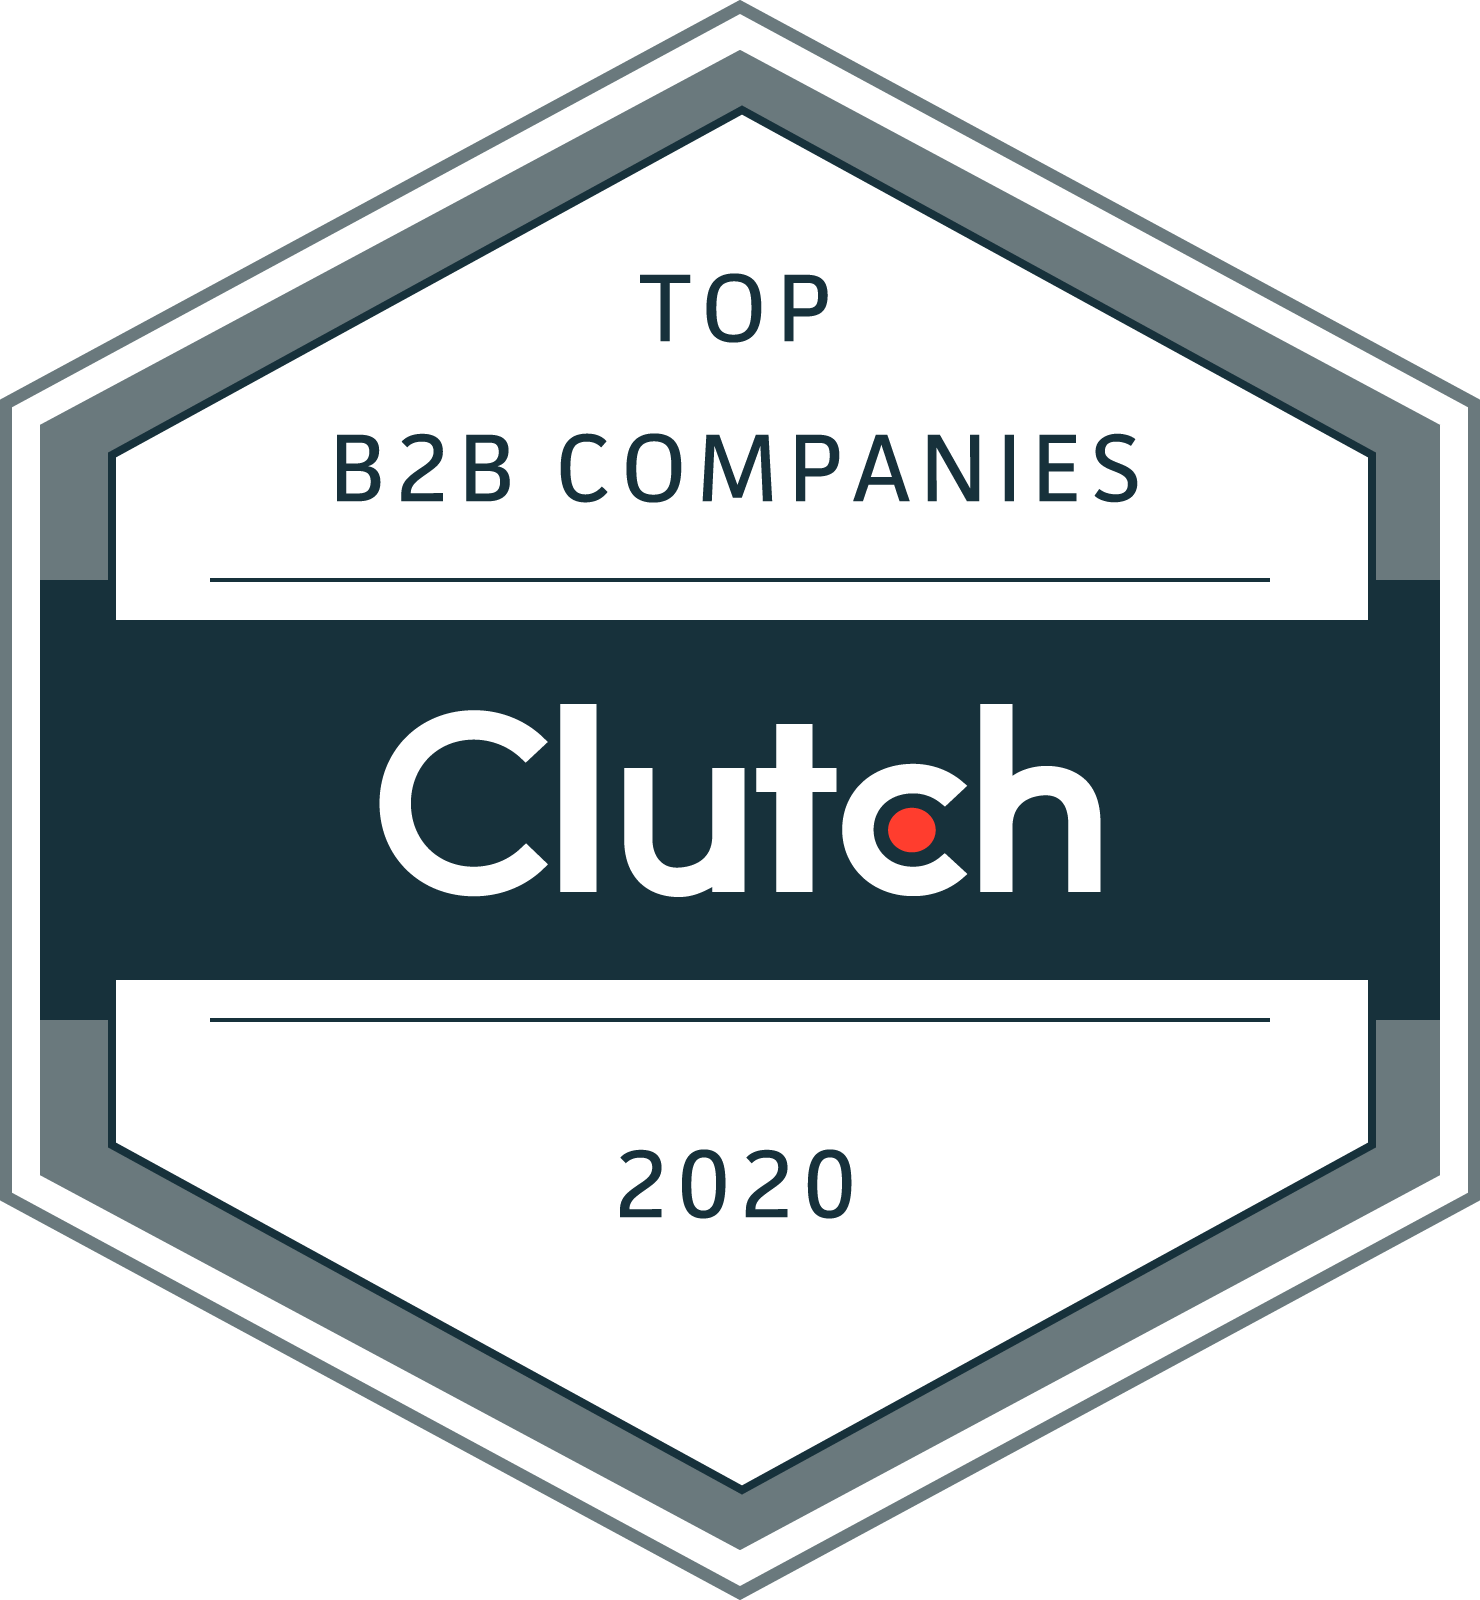 Bayshore Solutions Named Among the Most Highly Recommended B2B Companies in the U.S. by Clutch